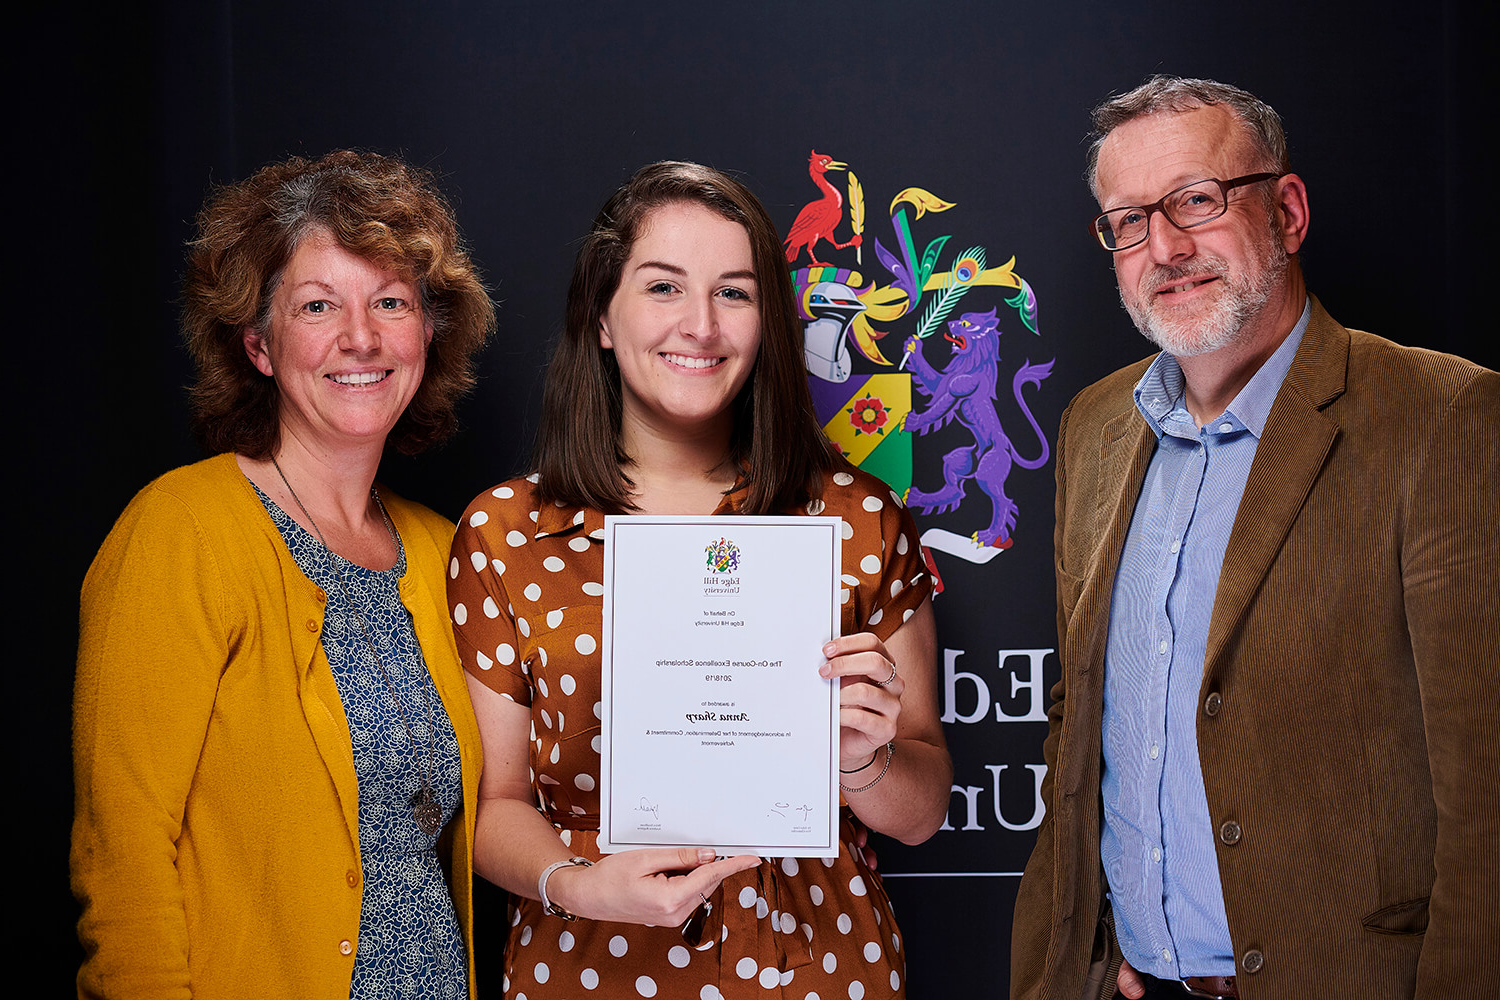 Scholarship winner Anna Sharp, with her family, shows off her certificate while attending a Scholarship Awards Evening.